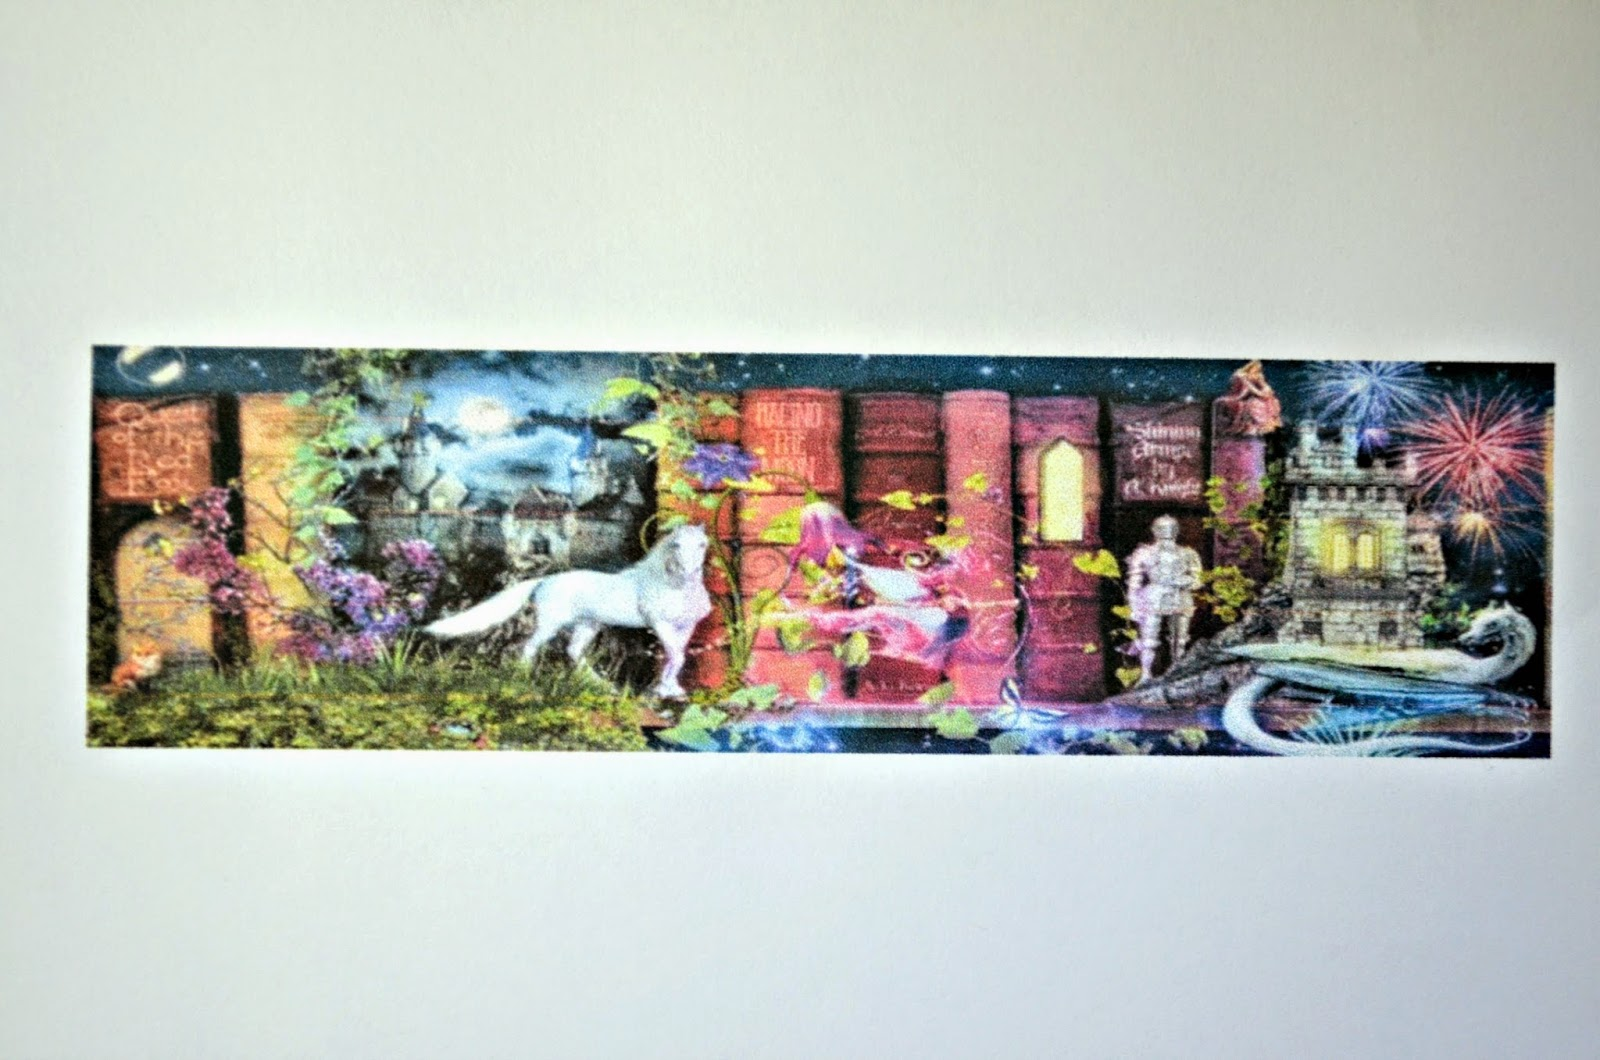 The Treasure Hunt Bookshelf Artwork By Artist Aimee Stewart Is One Vibrant Piece I Am Stitching A Portion Of Original